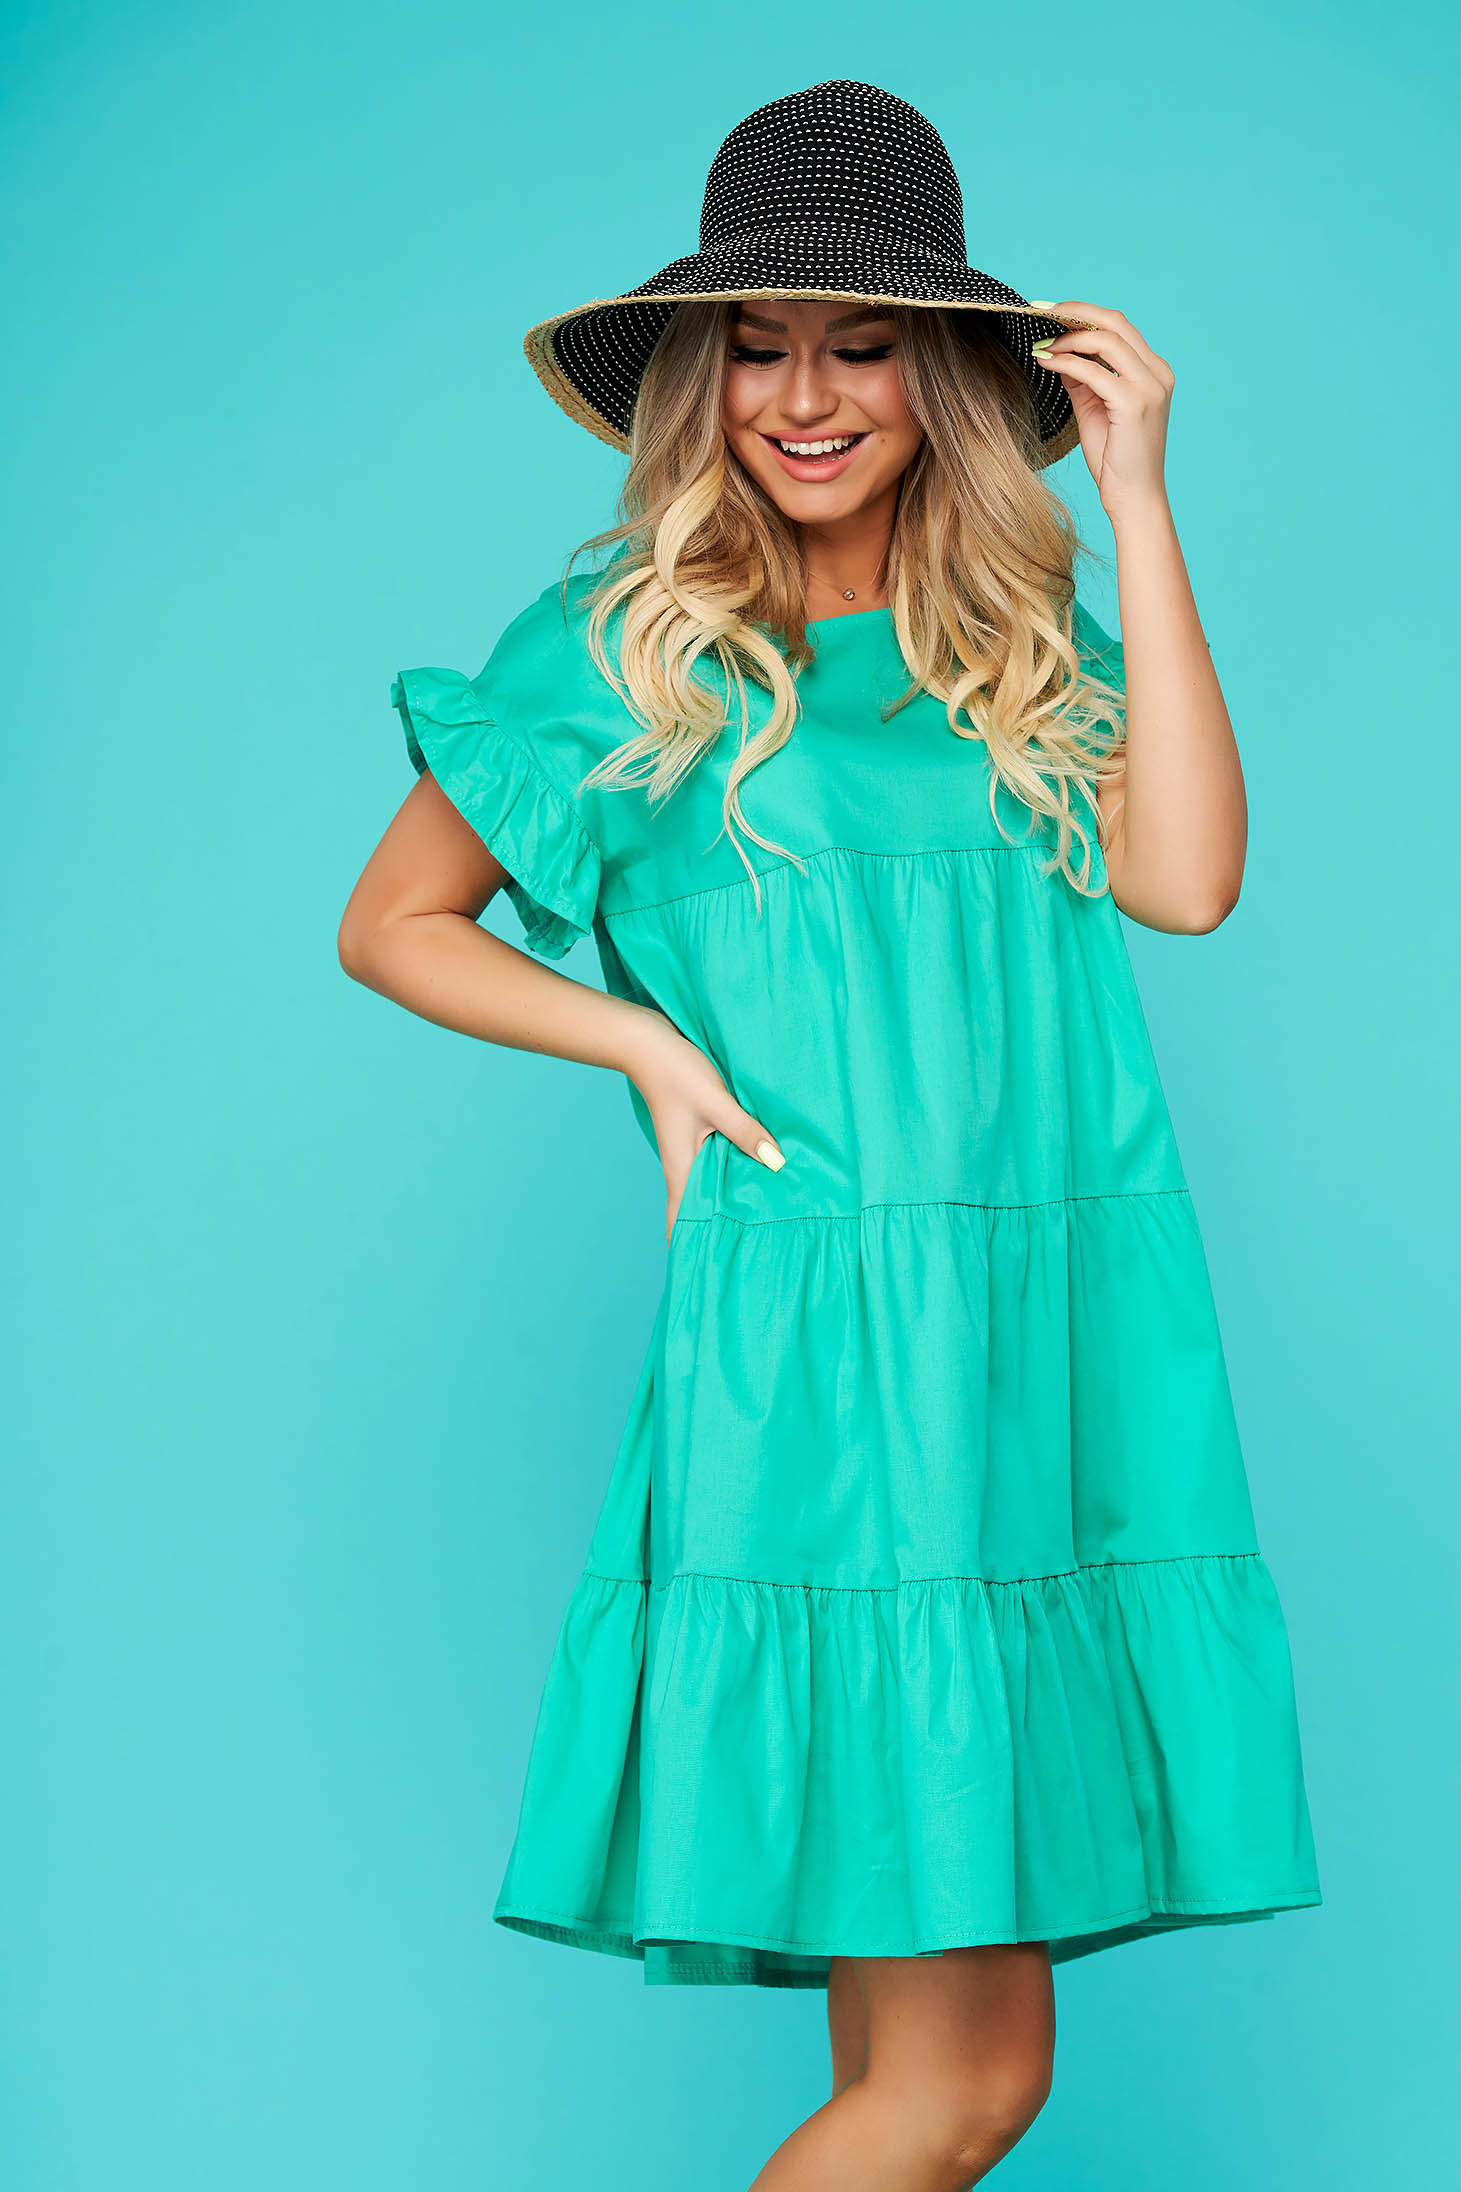 Turquoise dress daily flared nonelastic cotton